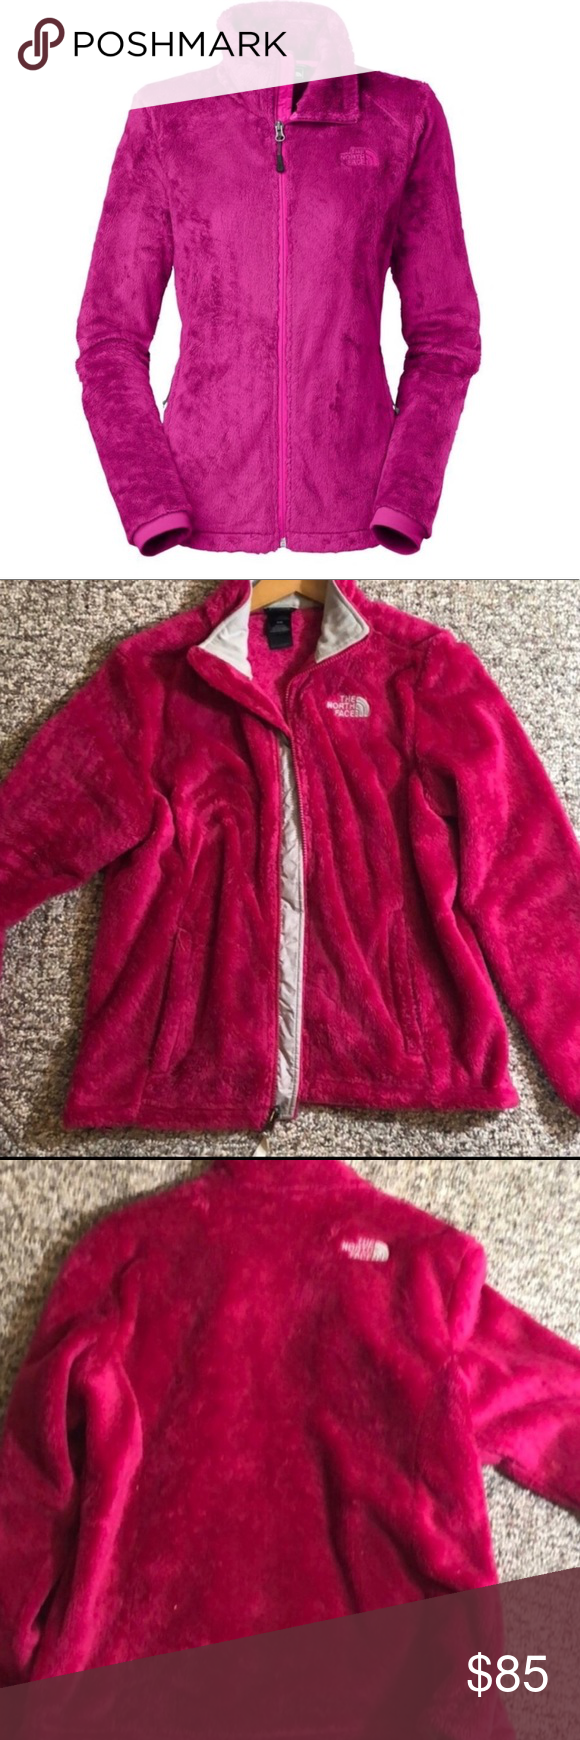 Pink Osito North Face Jacket Pink Fuzzy Jacket With Grey Lining And Symbol On Chest 2 Pockets And Zippers U Pink Fuzzy Jacket North Face Jacket Clothes Design [ 1740 x 580 Pixel ]